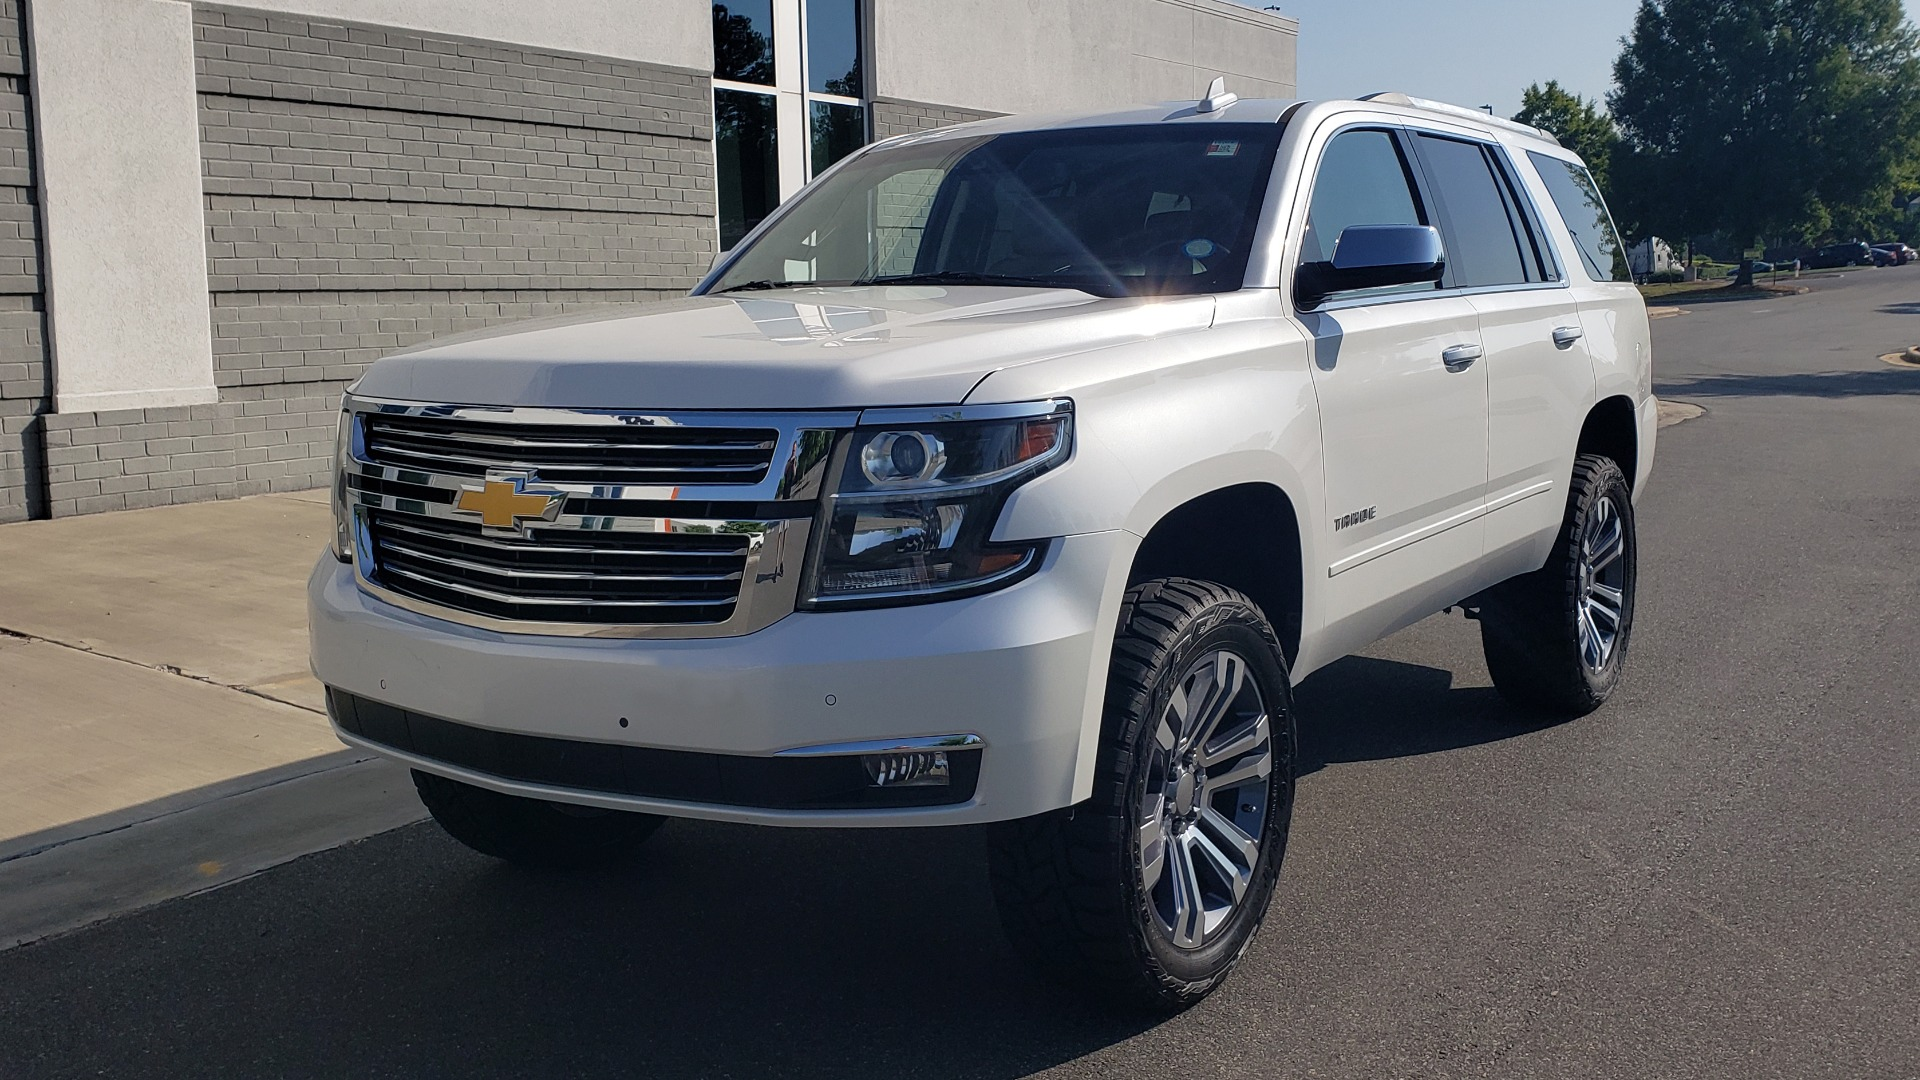 Used 2018 Chevrolet TAHOE PREMIER 4X4 / NAV / BOSE / SUNROOF / ENT SYS / 3-ROW / REARVIEW for sale $55,995 at Formula Imports in Charlotte NC 28227 1